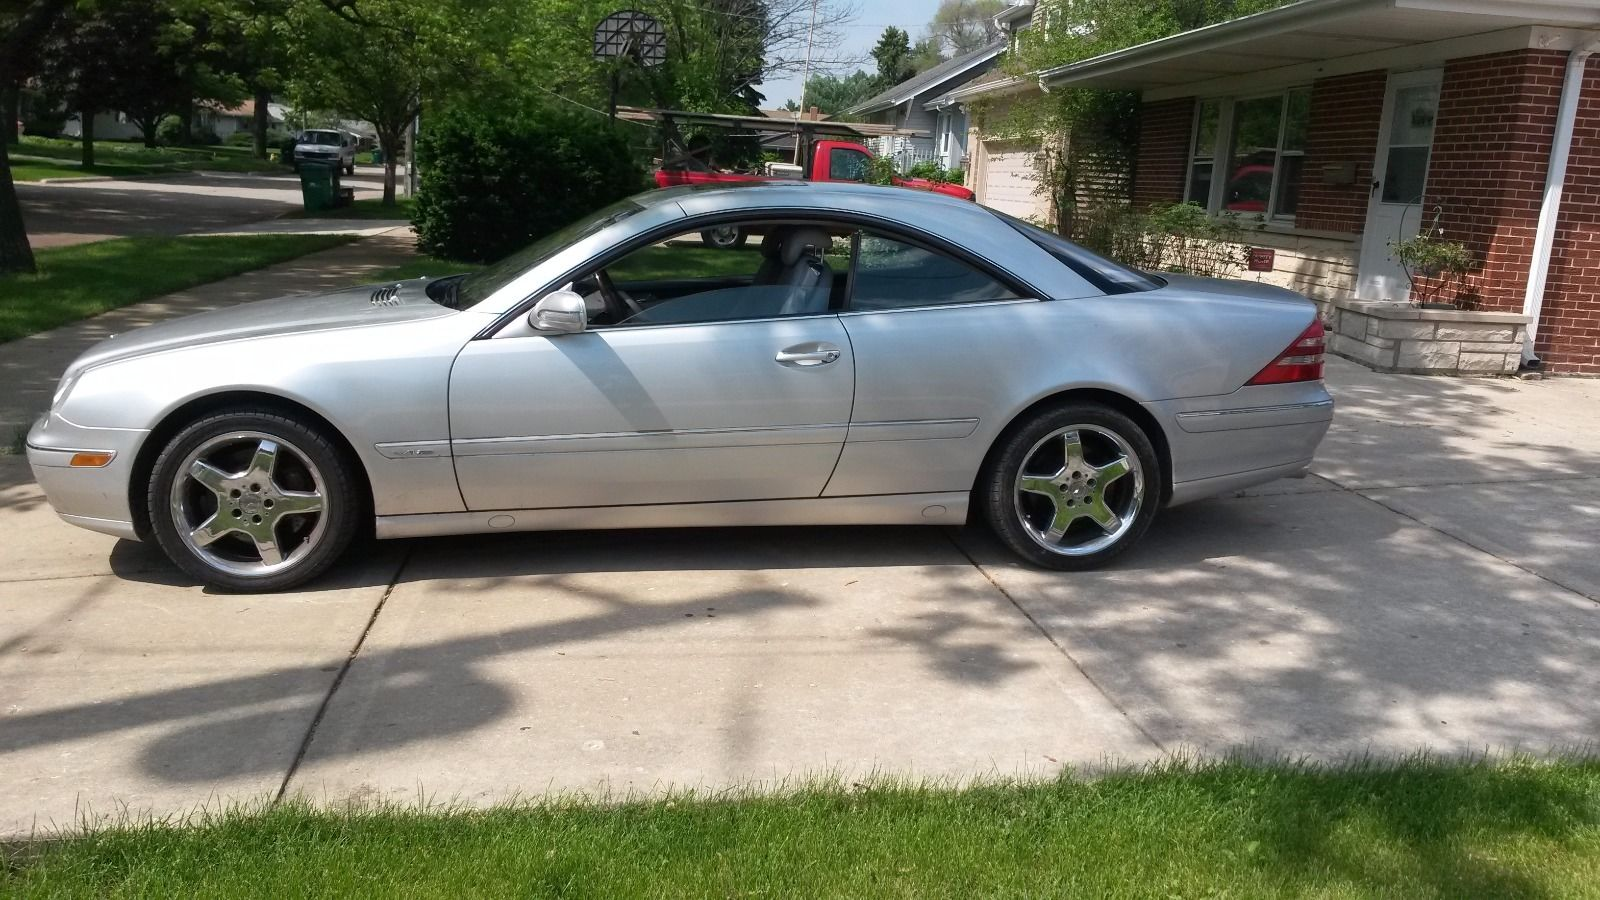 2001 mercedes benz cl600 coupe for sale for 2001 mercedes benz s500 for sale